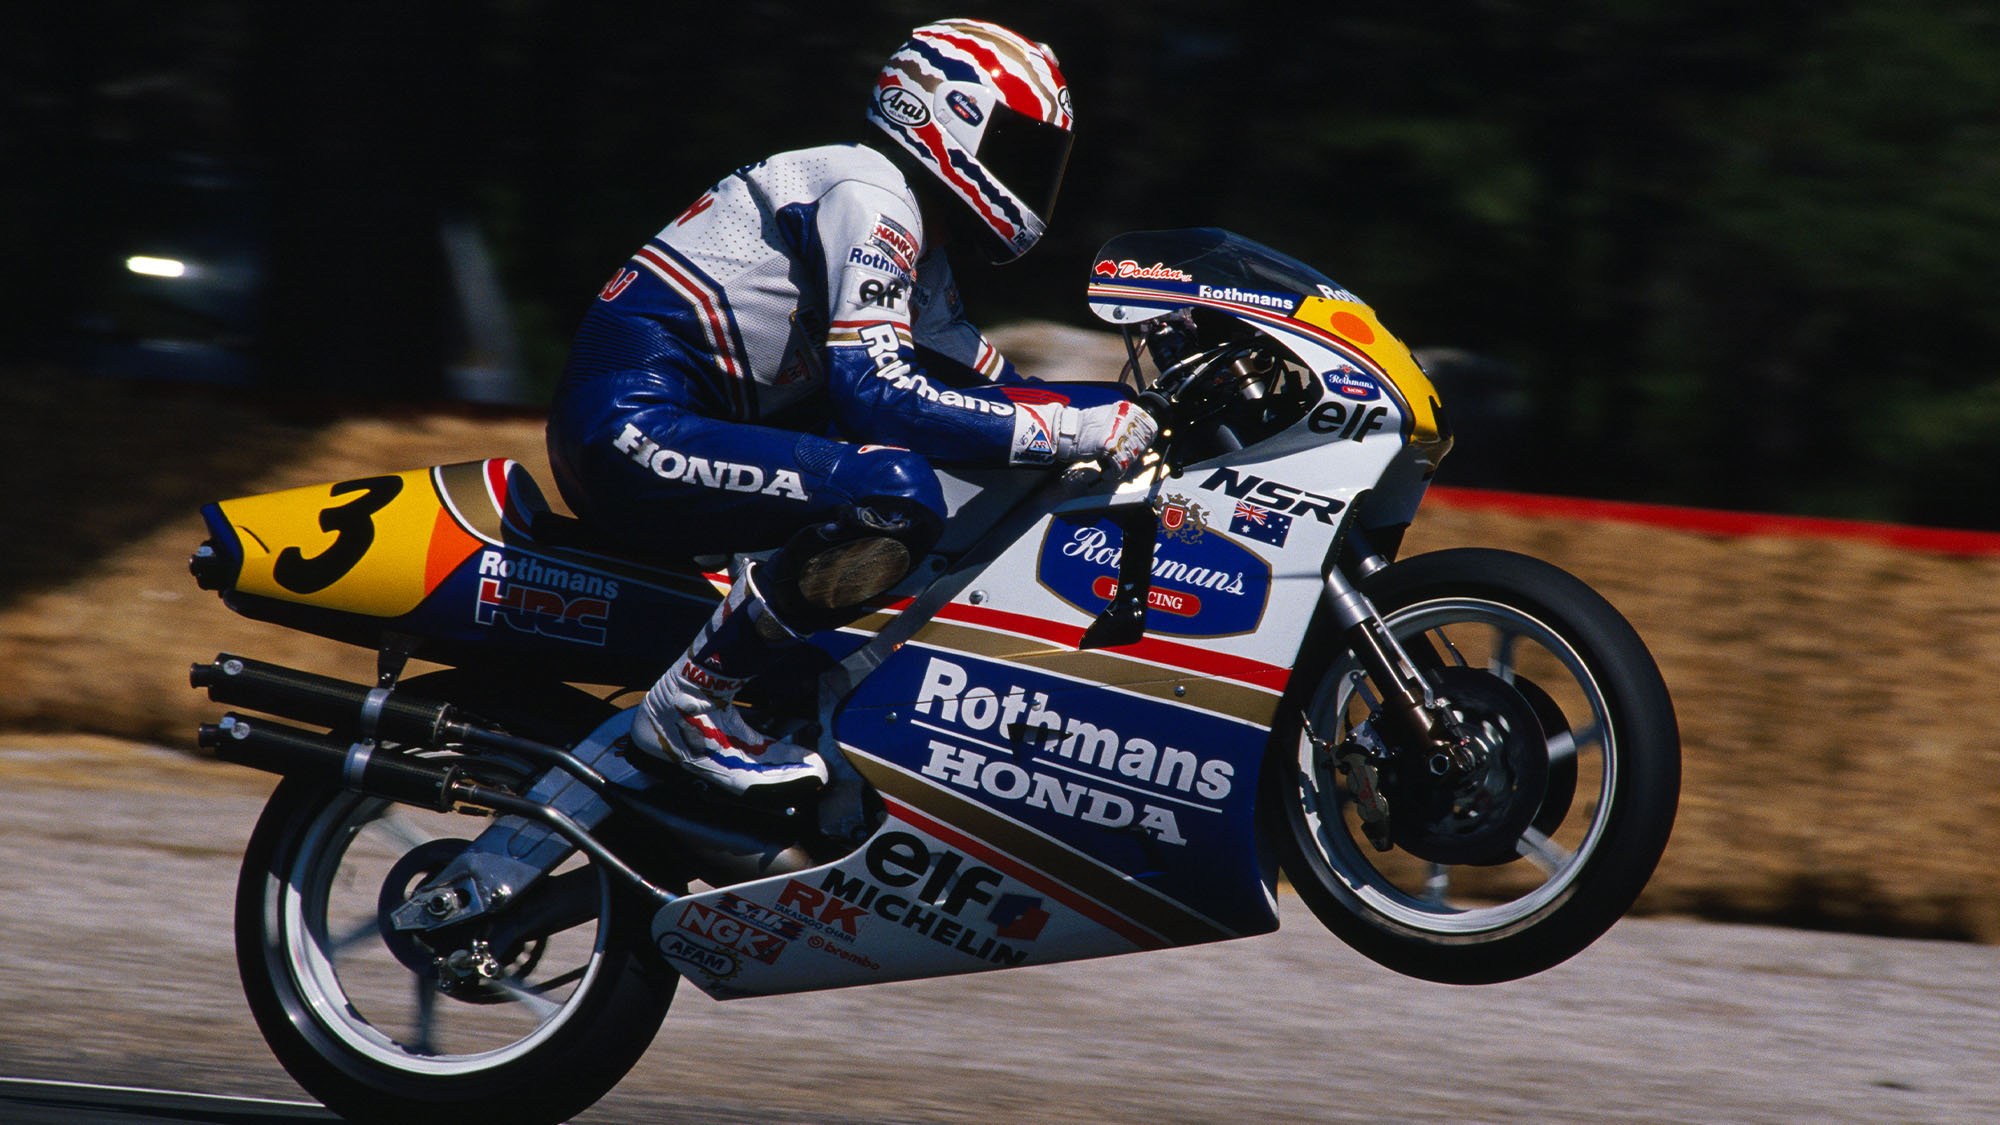 Mick Doohan: Motorcycle racing's most determined competitor